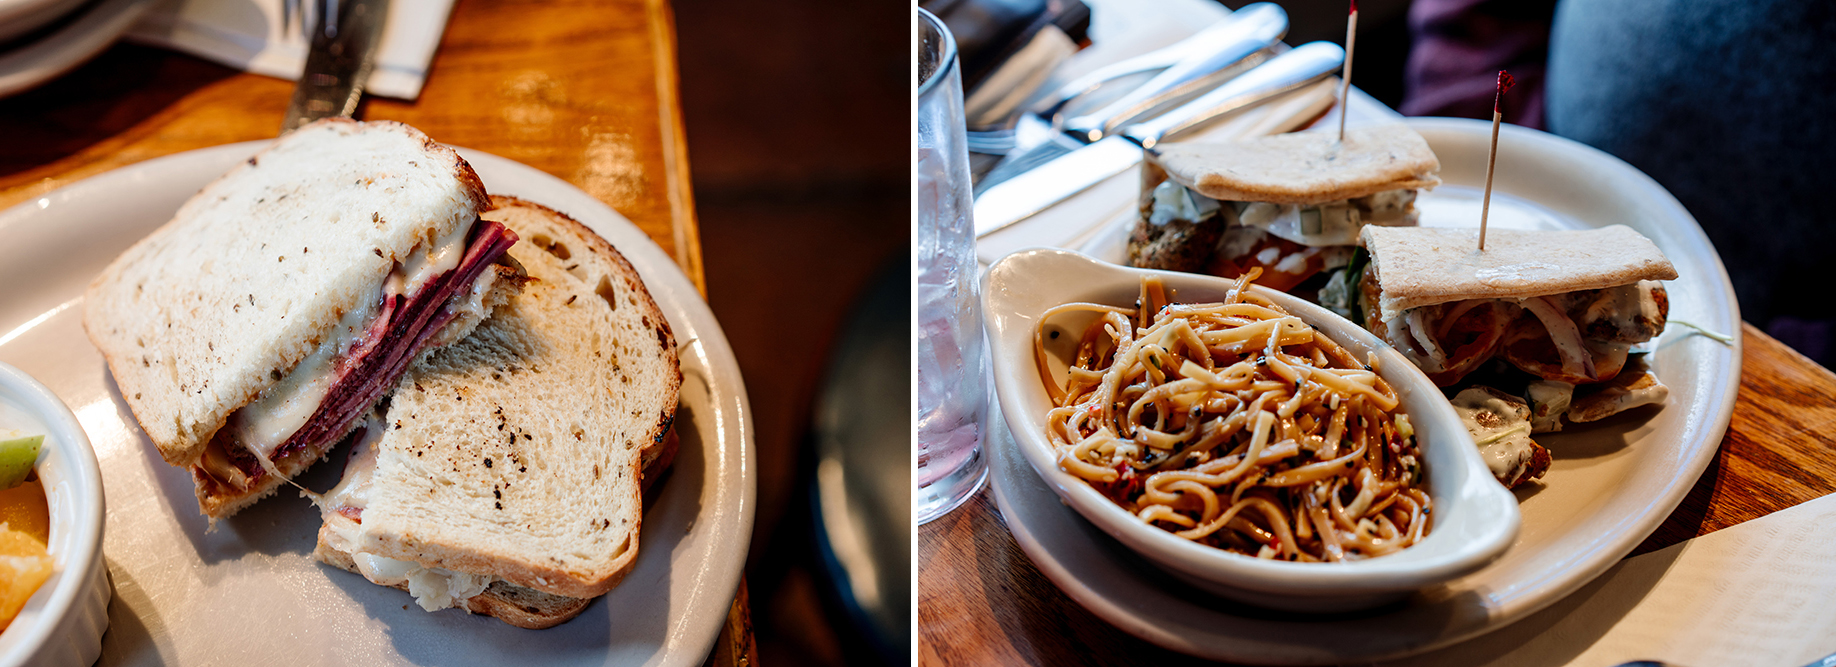 Left: The Rueben Sandwich. Right: The Falafel Sandwich // Photos by Becca Dilley